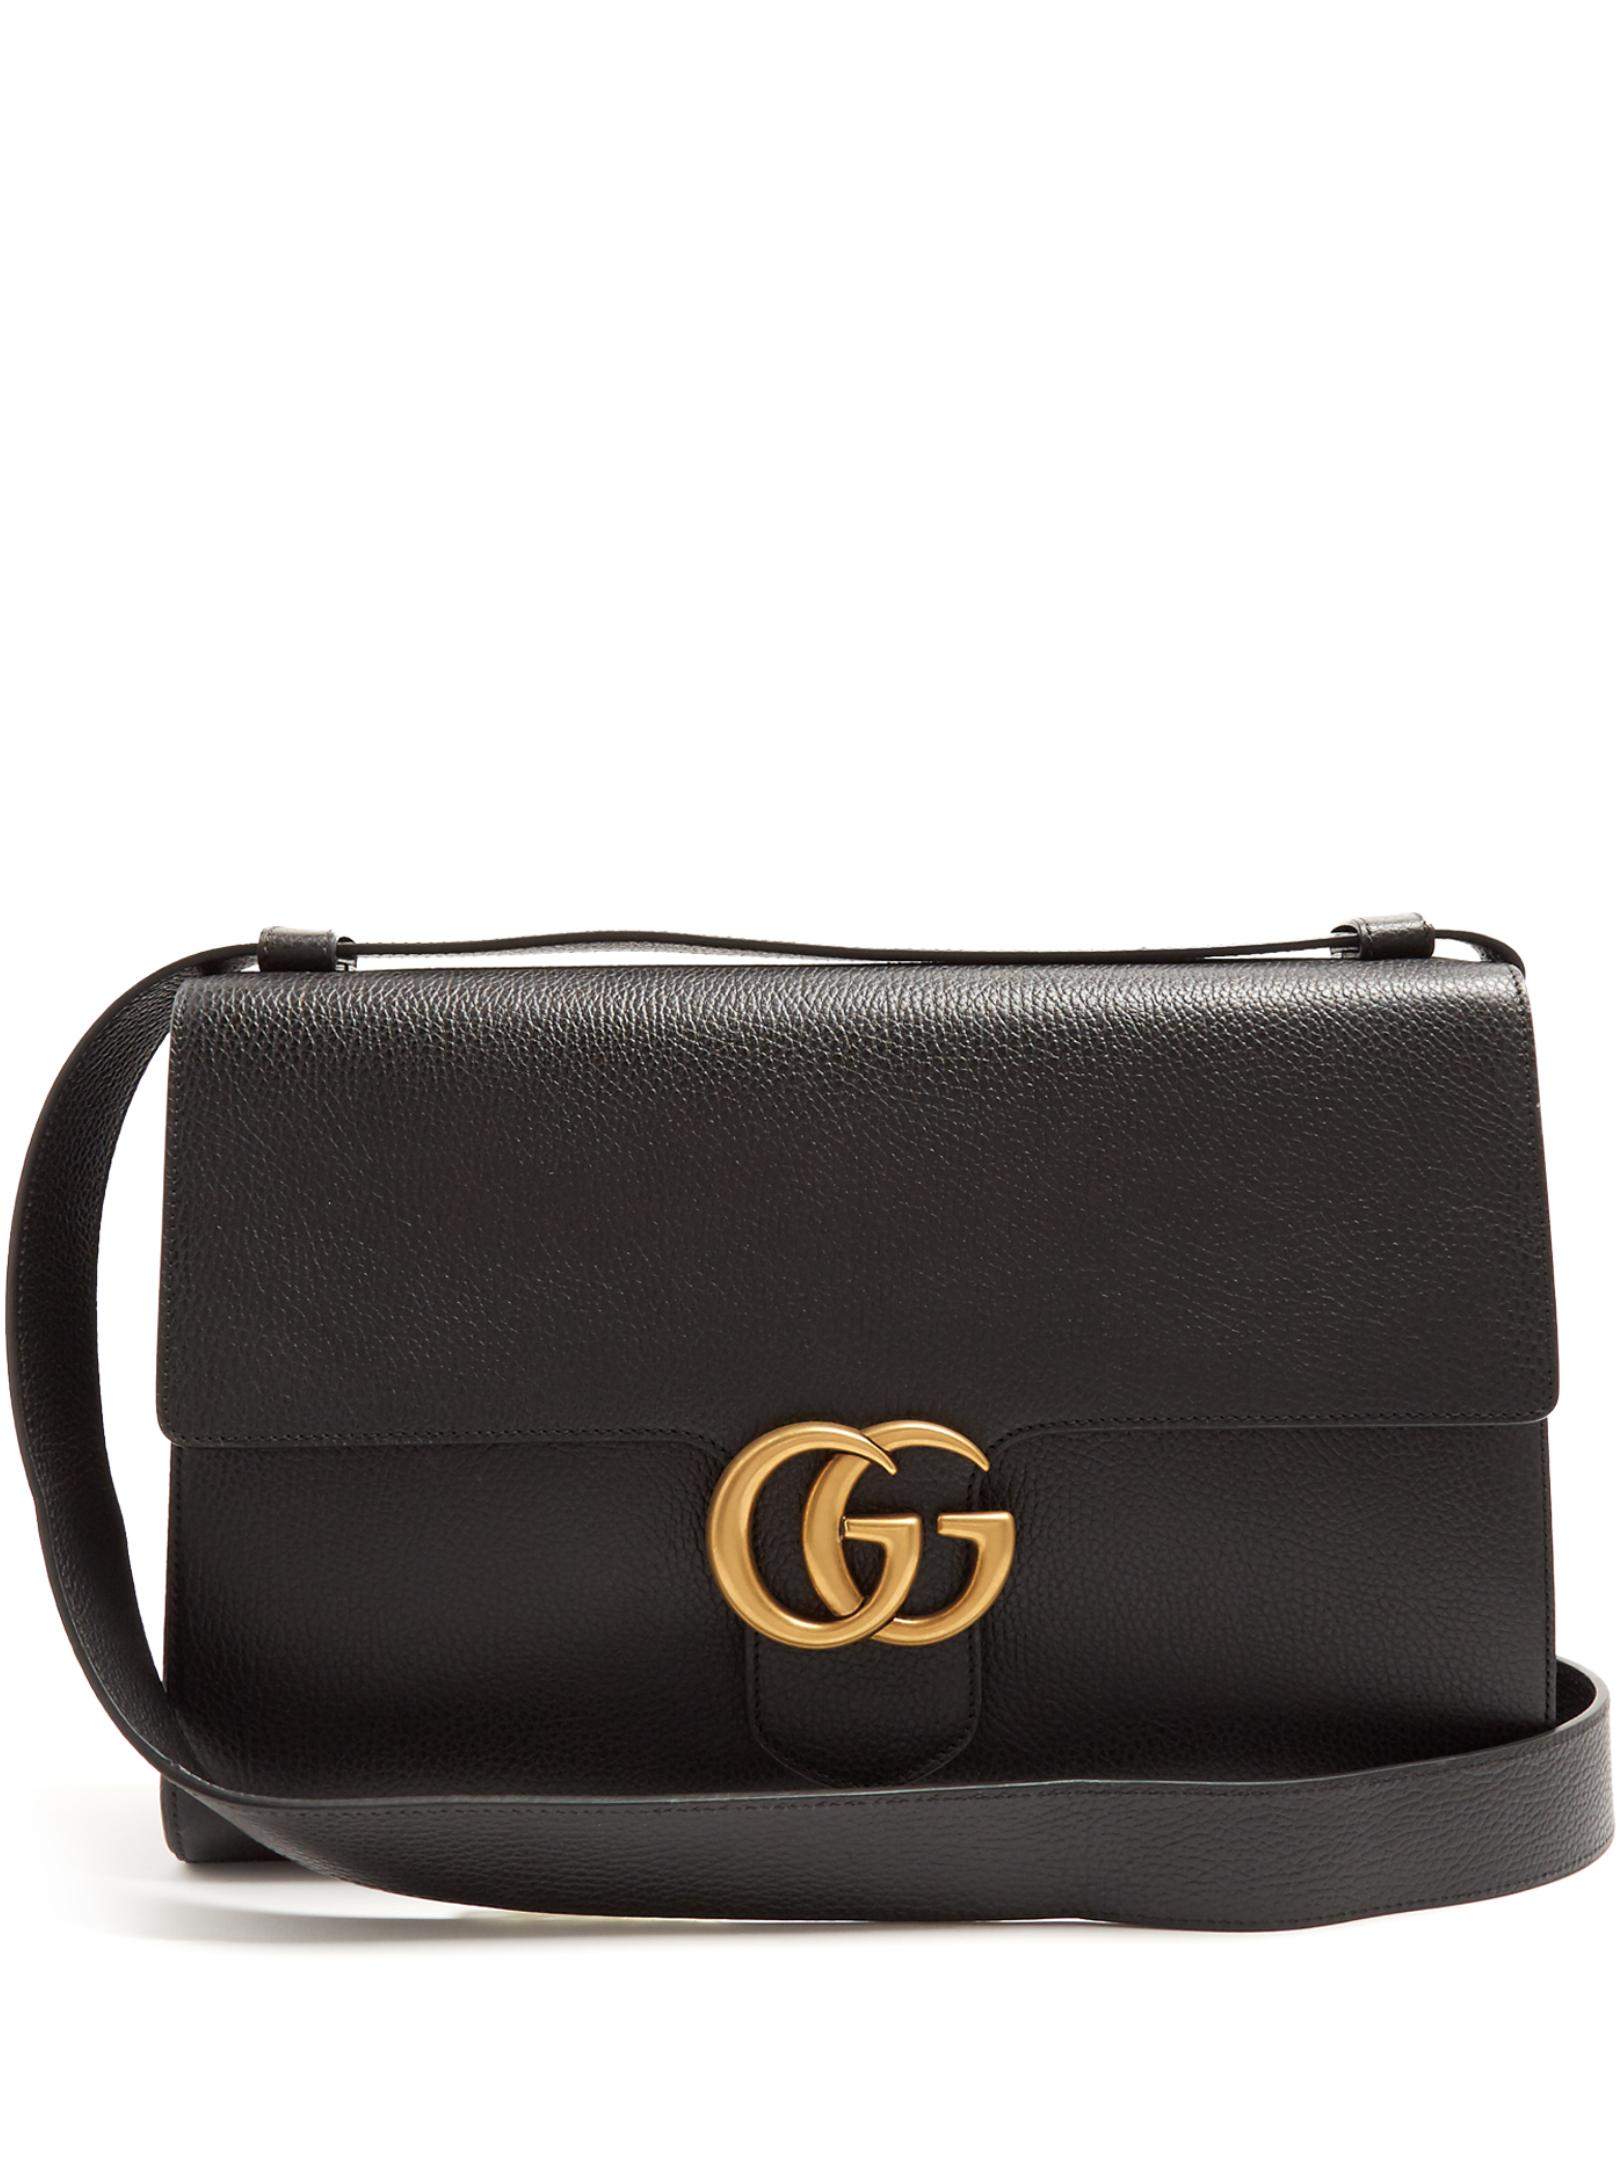 Lyst - Gucci Gg Marmont Grained-leather Messenger Bag in Black for Men d87c6c5cfeae4